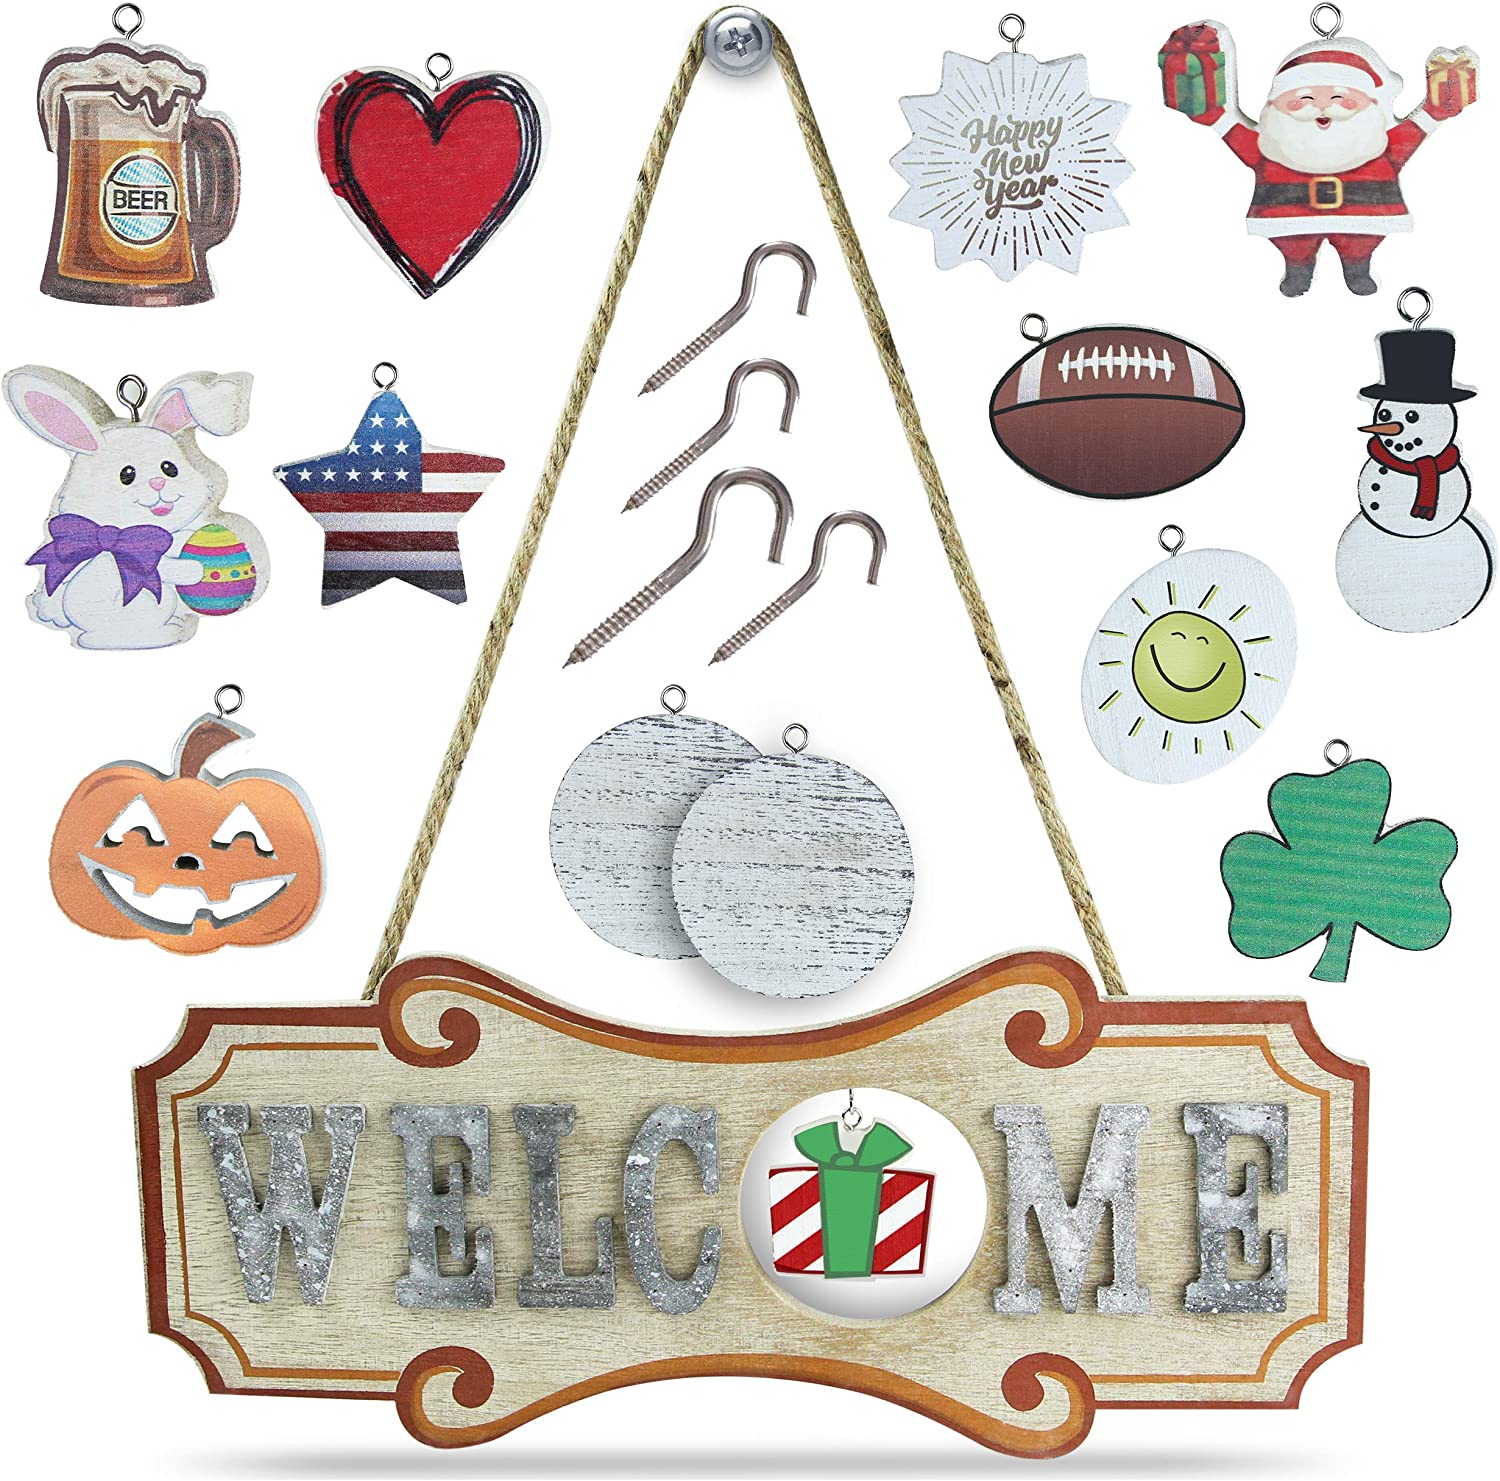 Signcrafter Wooden Interchangeable Welcome Sign: 12 Unique and 2 Customizable Plaques - Welcome Sign with Interchangeable Holiday - 4 Extra Hooks Included